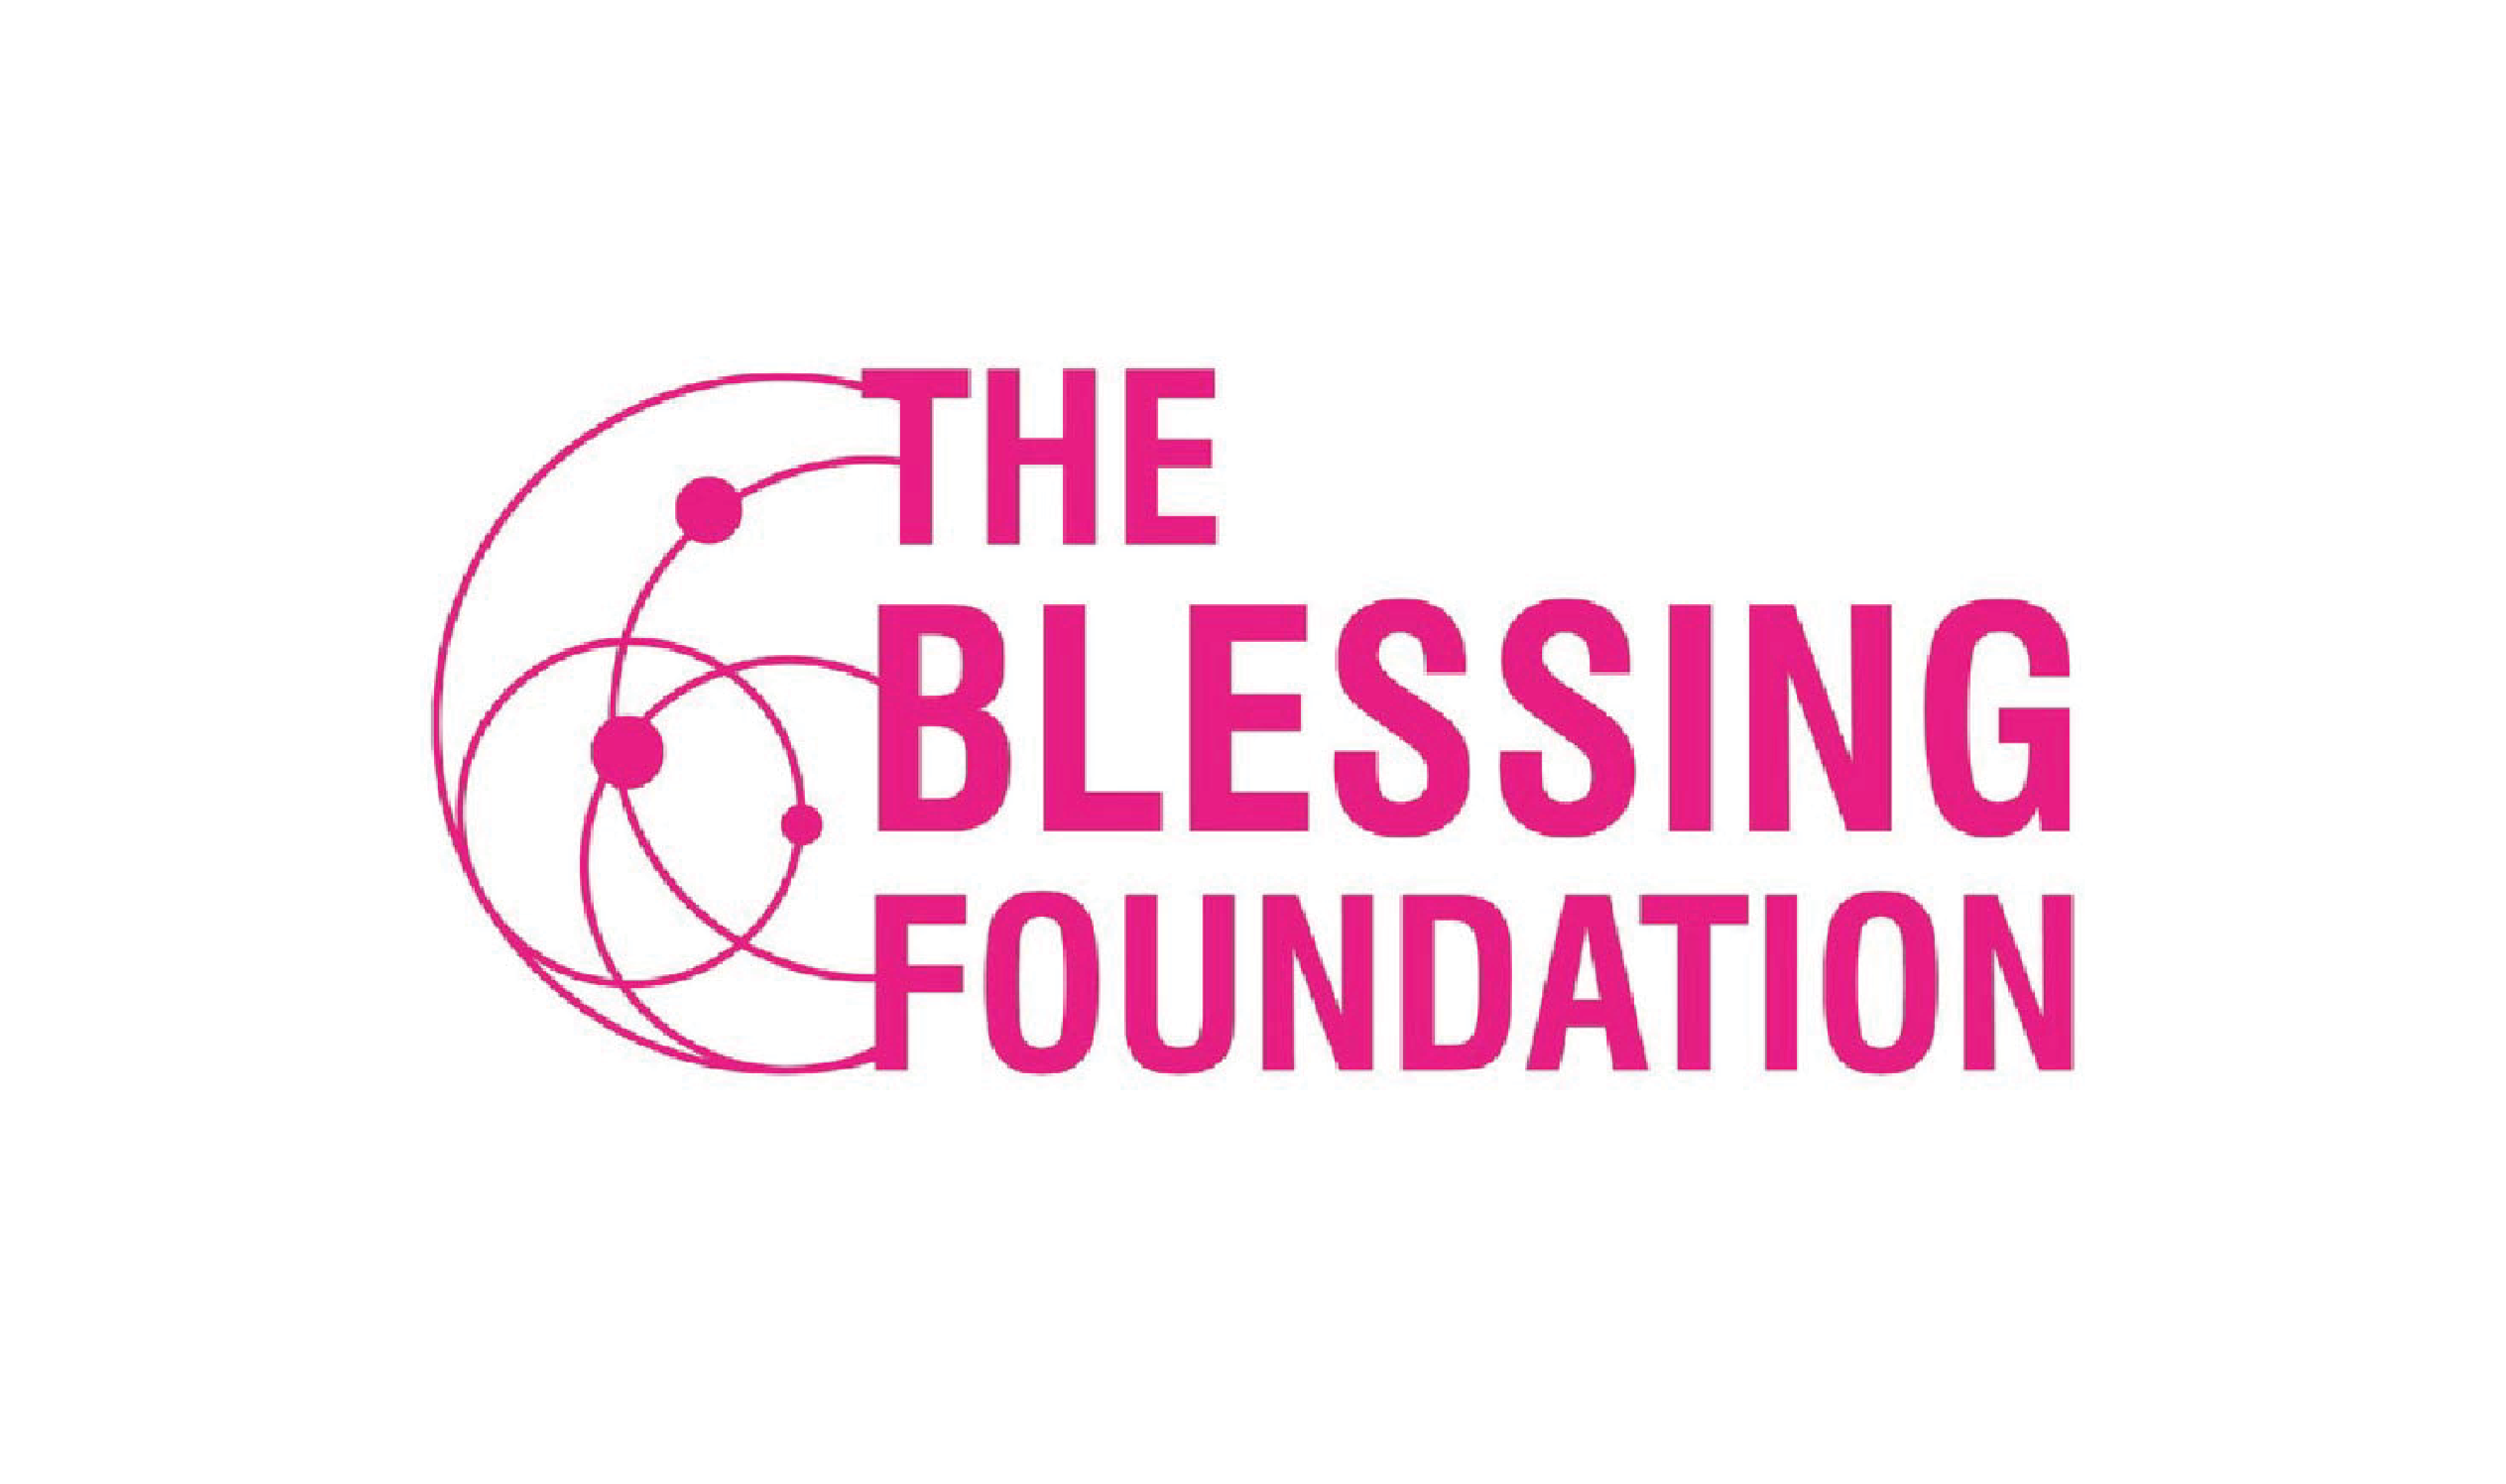 The Blessing foundation